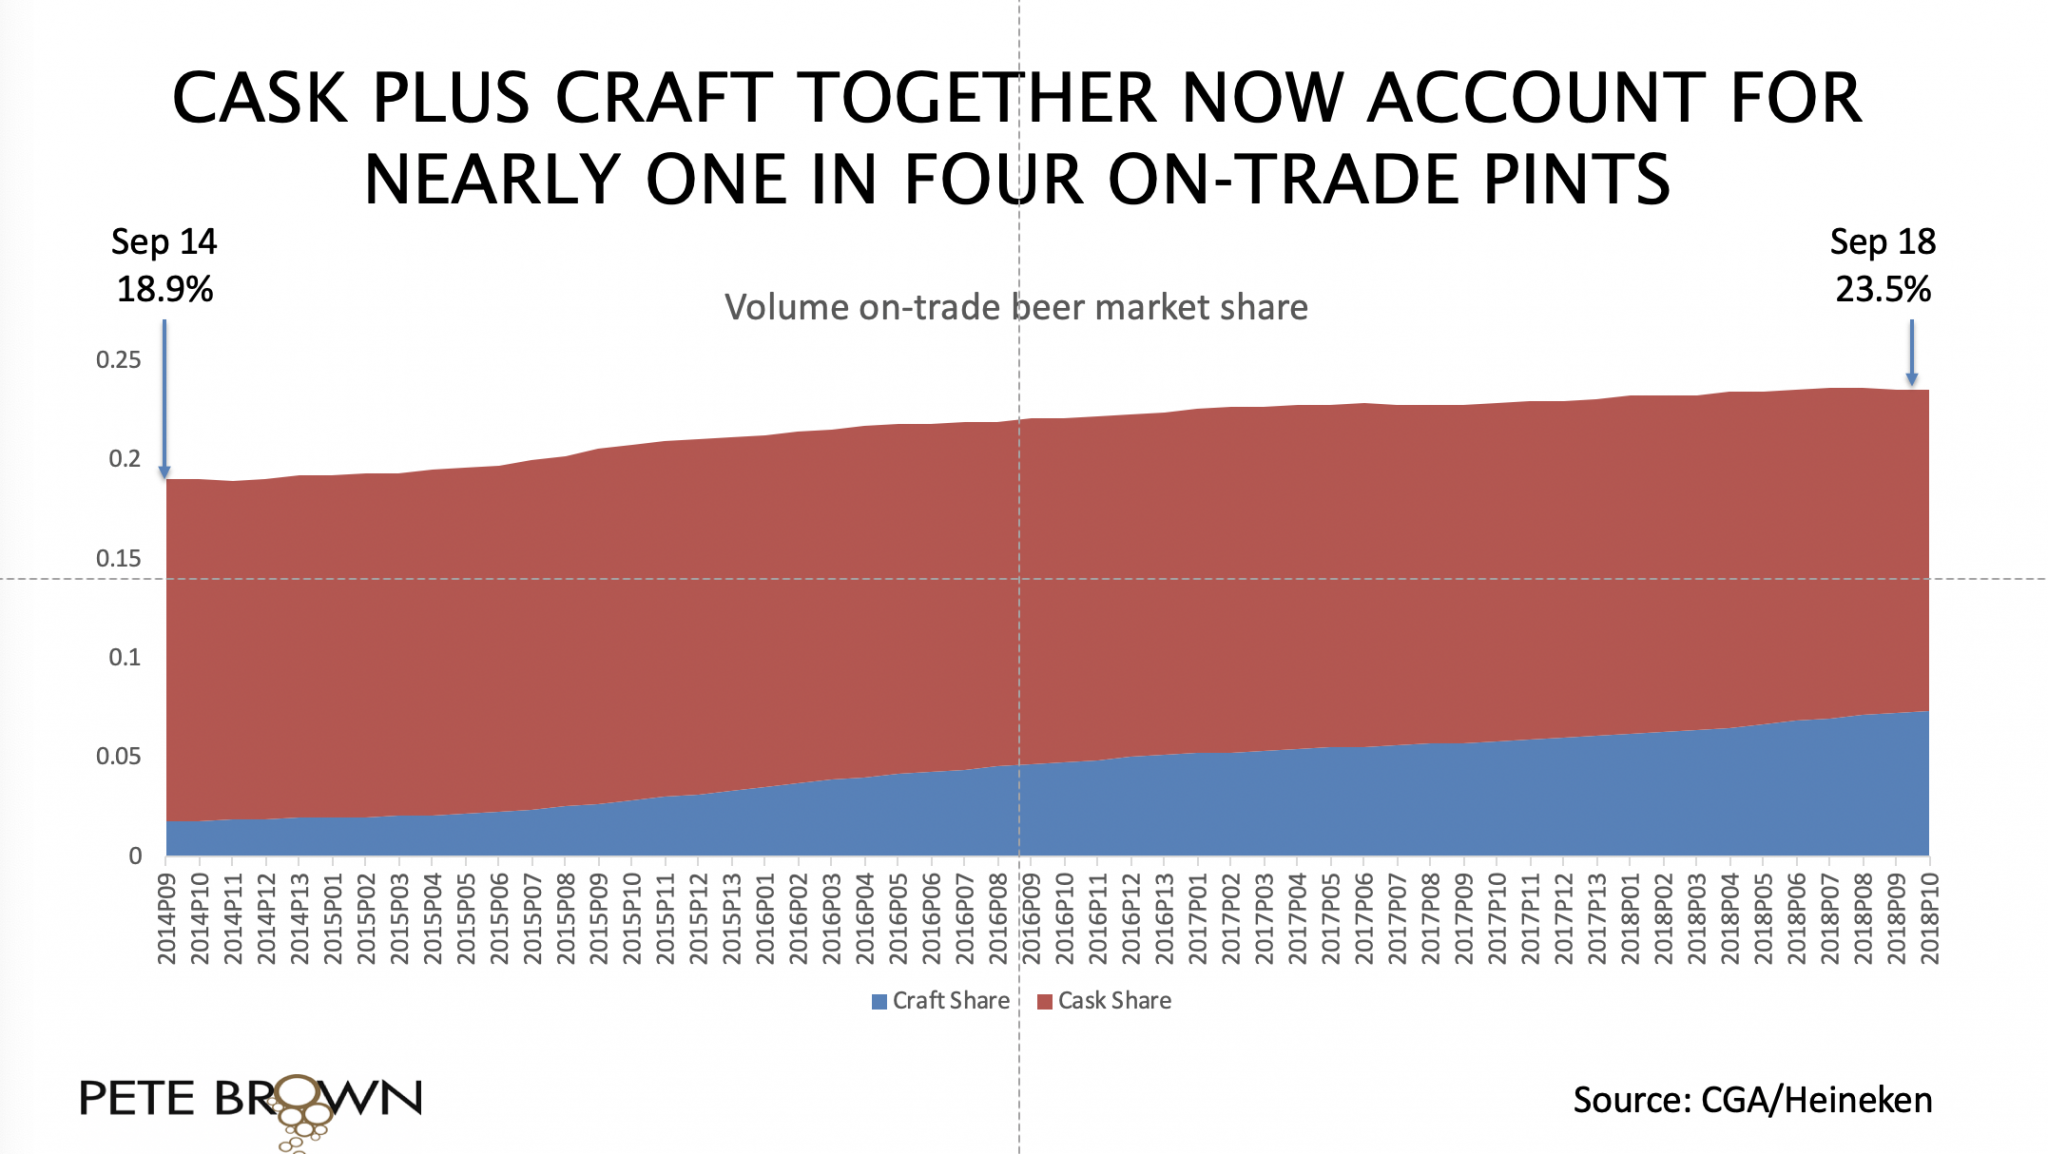 Pete Brown's chart of cask + craft sales.